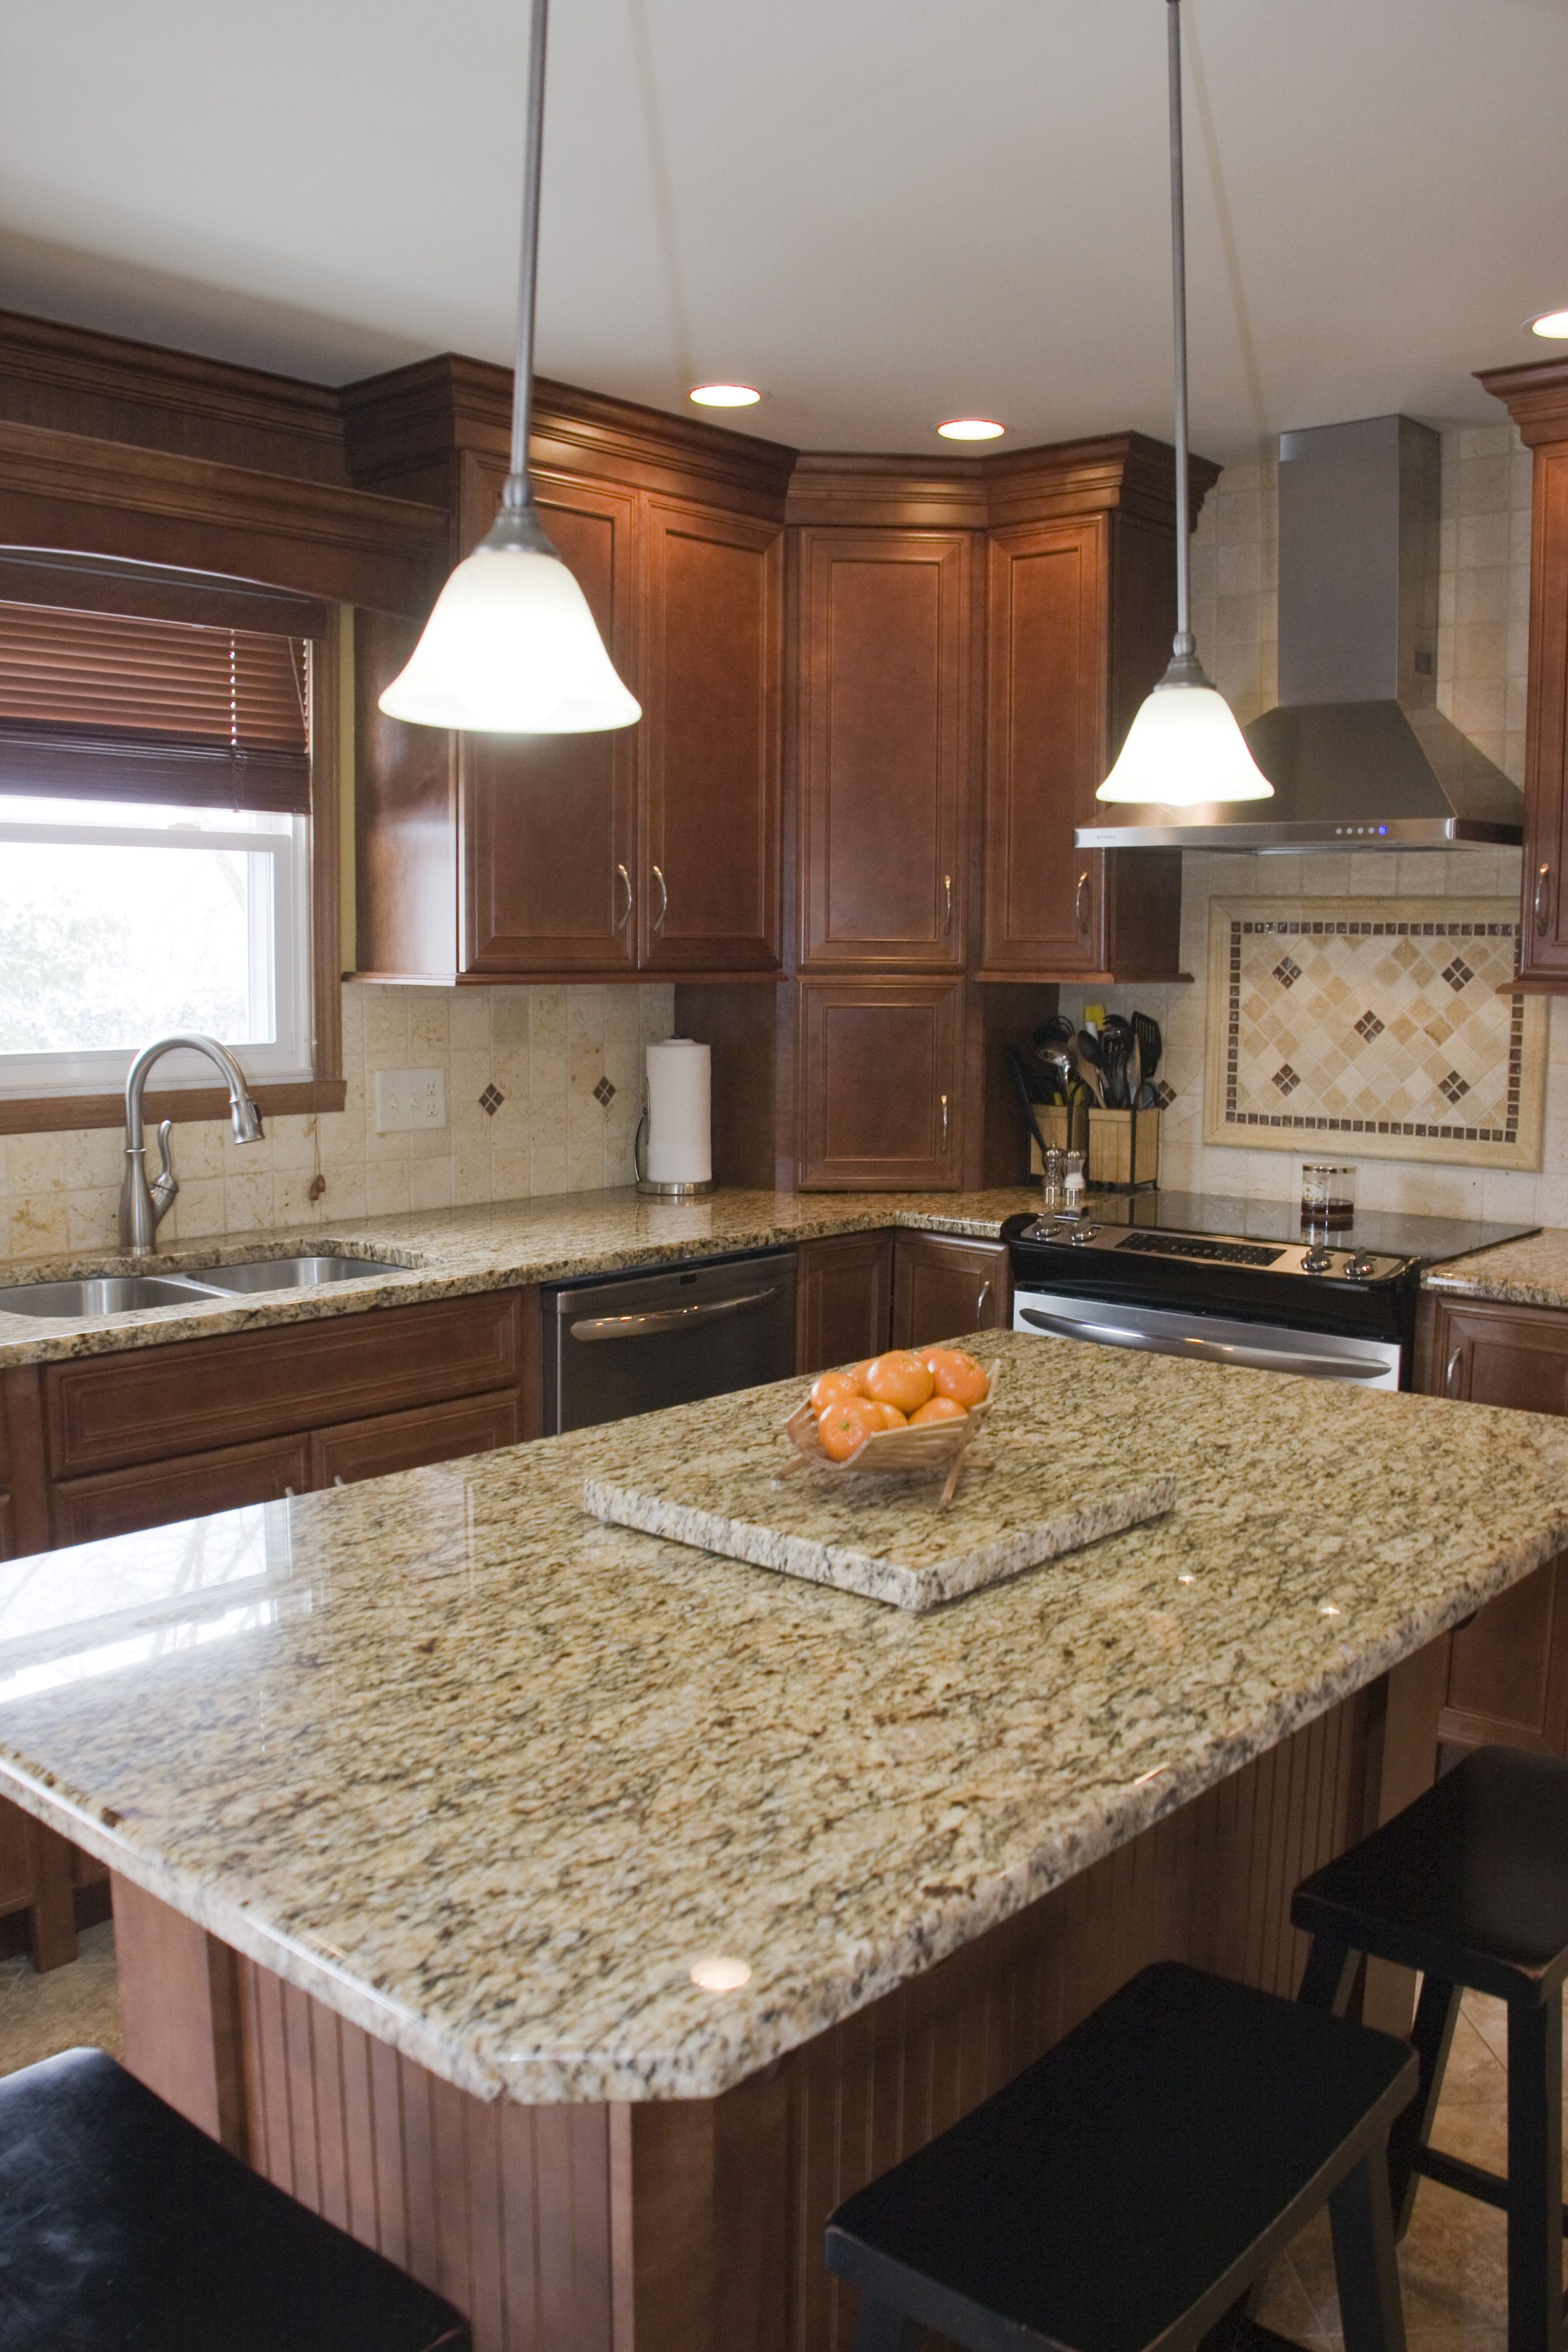 Maple Nutmeg cabinets with Granite tops and light colored ... on Light Maple Cabinets With Black Countertops  id=95358